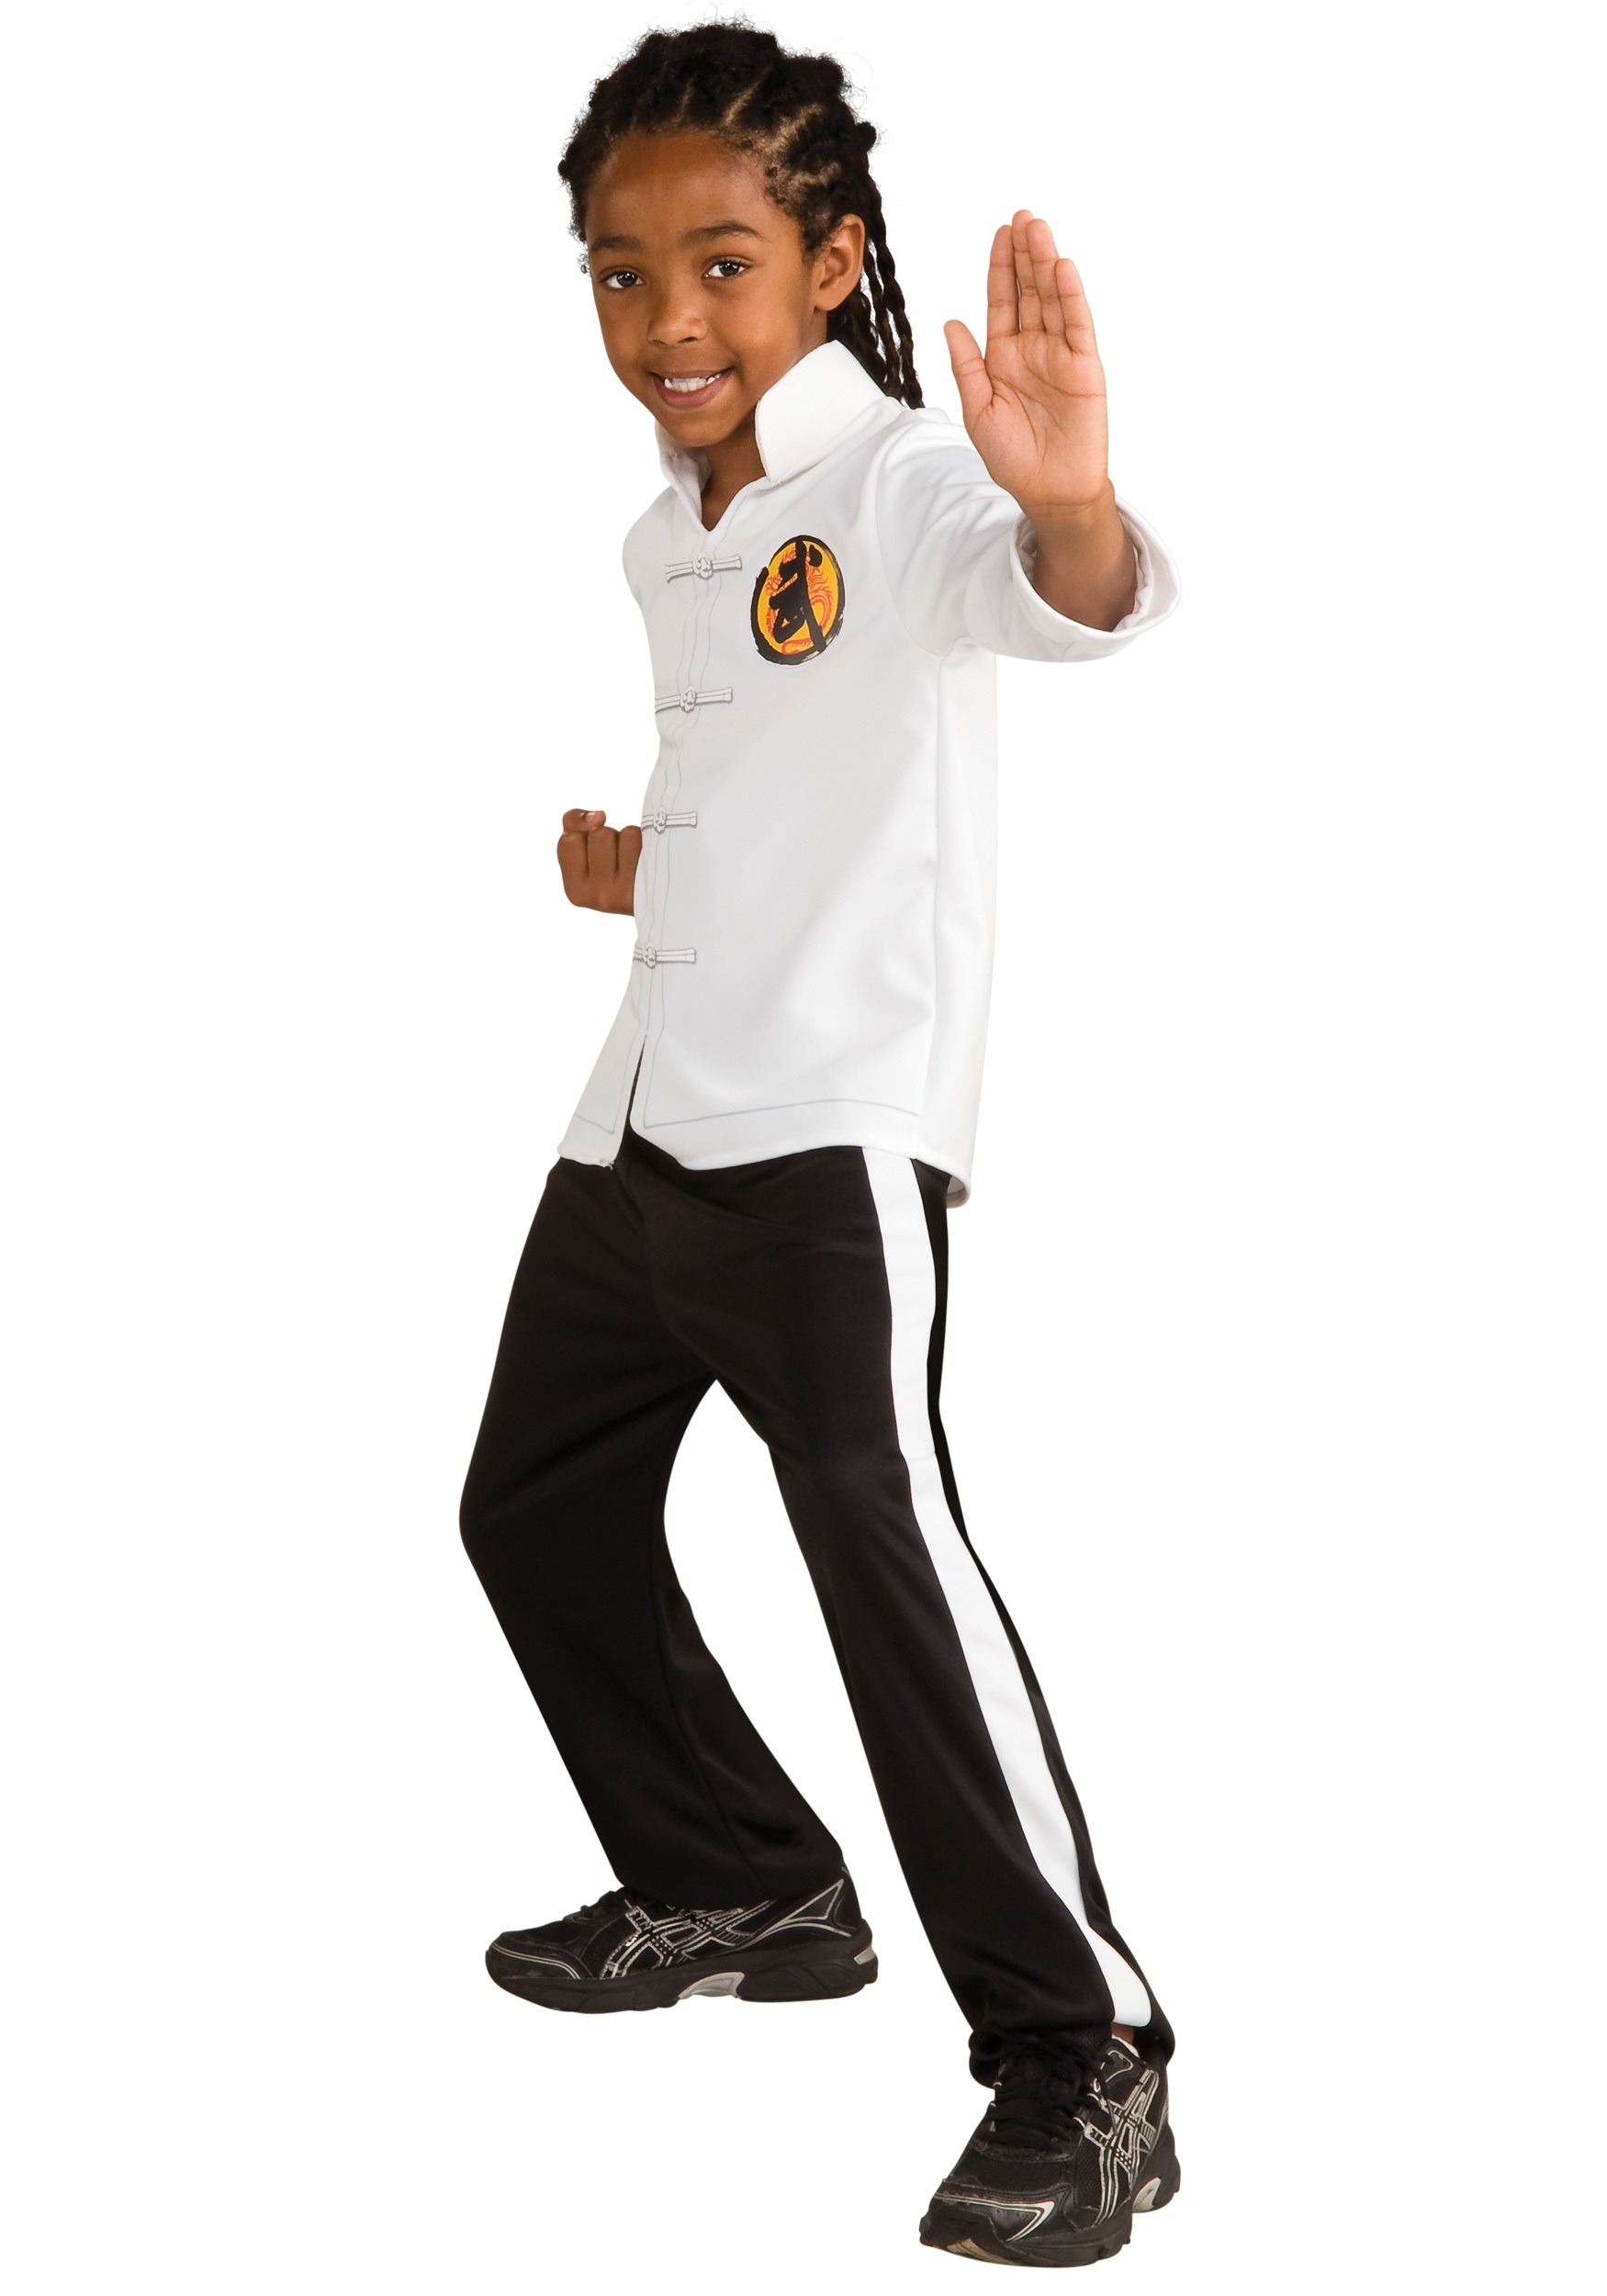 Child Karate Kid Costume  sc 1 st  Halloween Costumes & Child Karate Kid Costume - Halloween Costumes